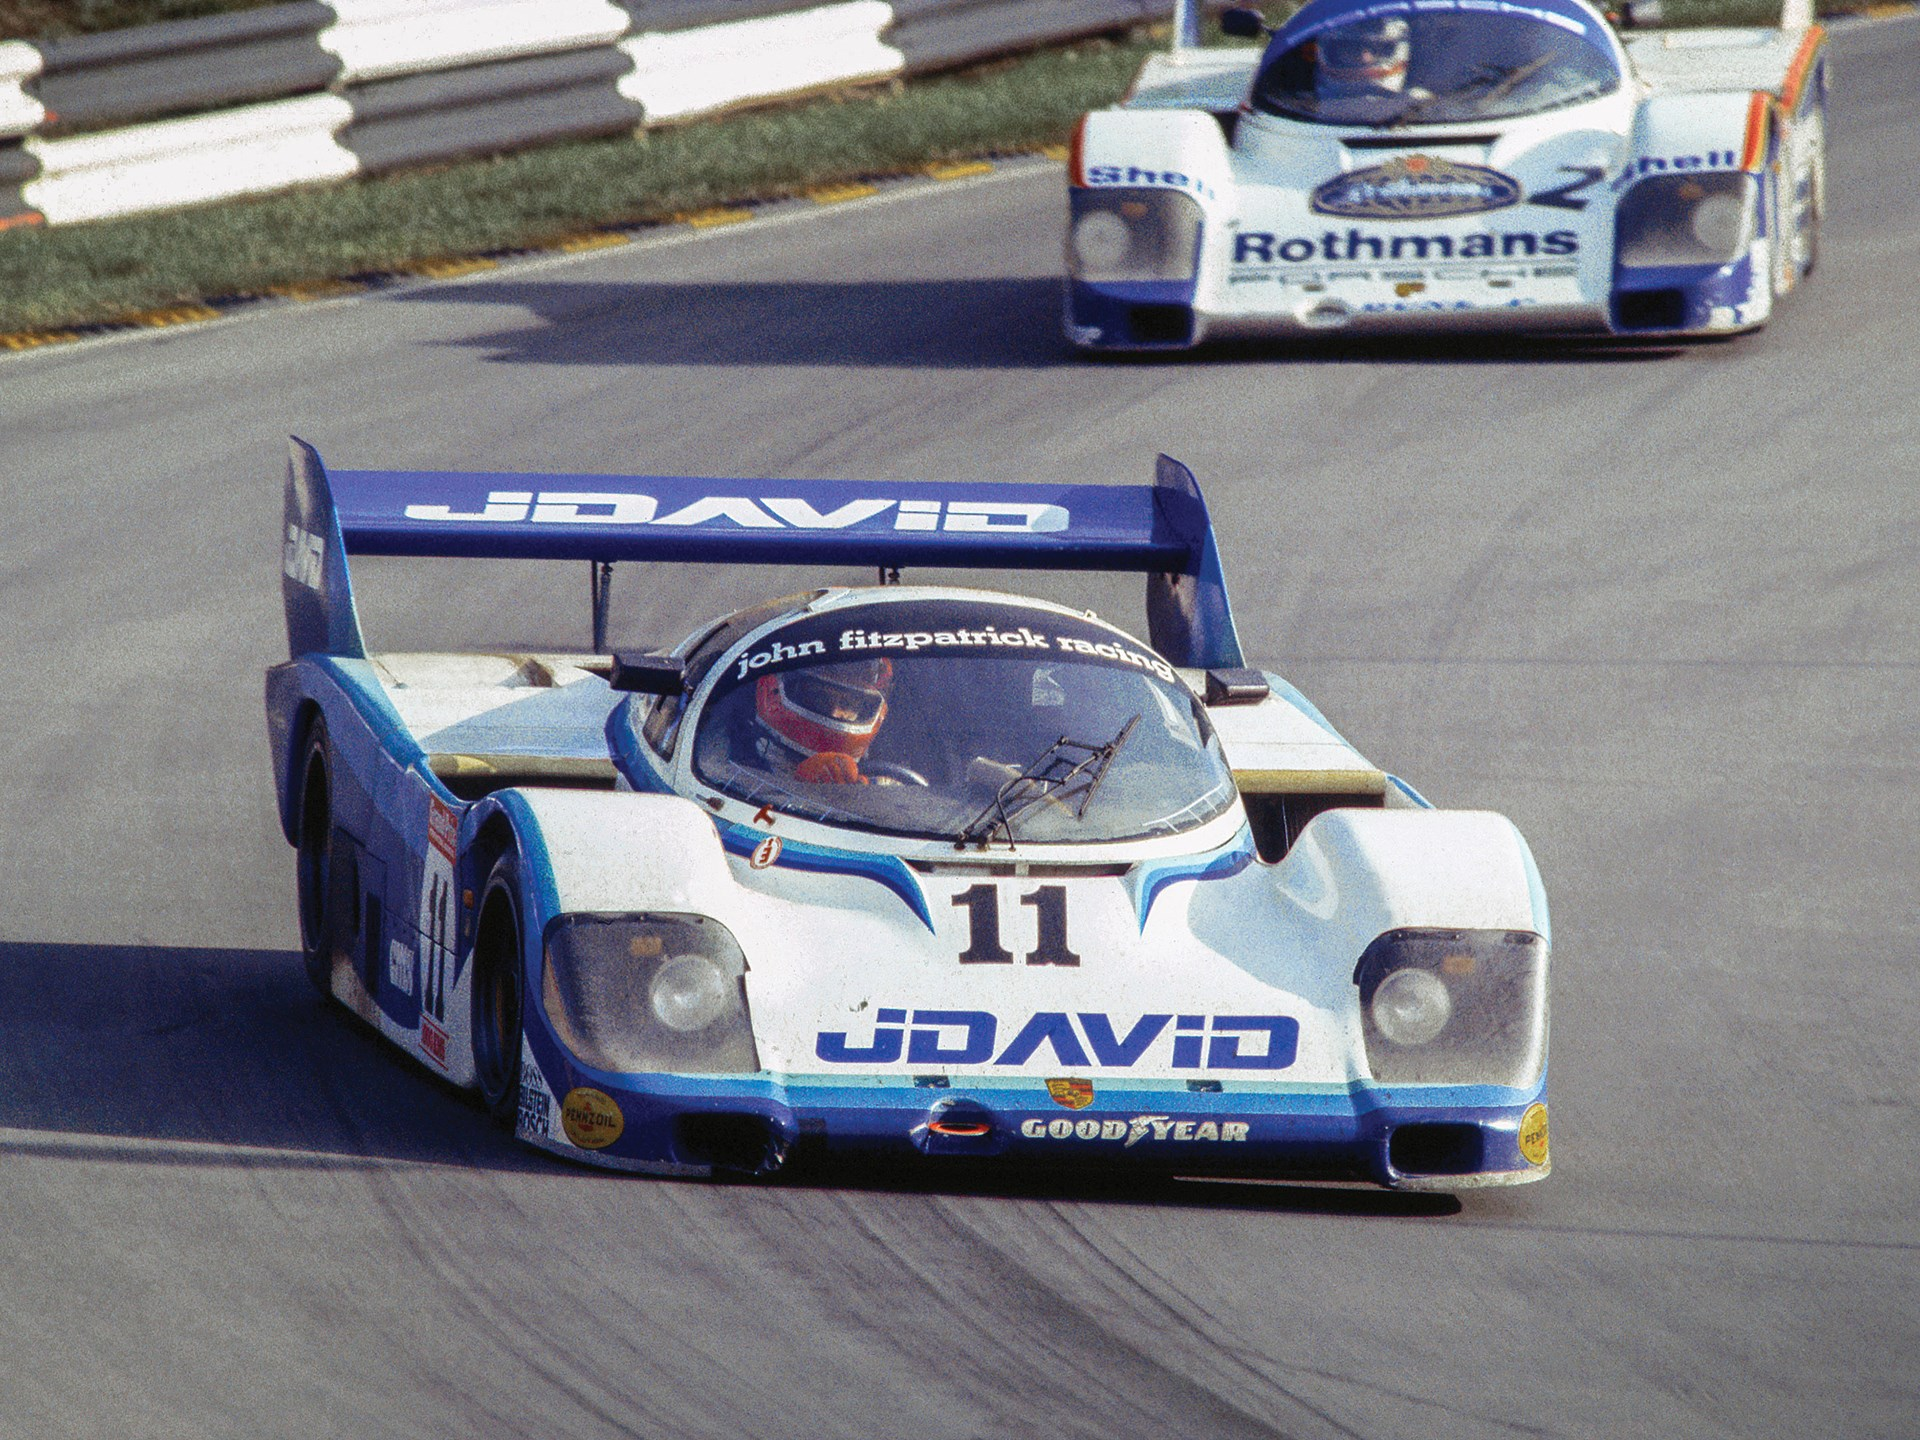 Chassis no. 956-110 at Brands Hatch in 1983.